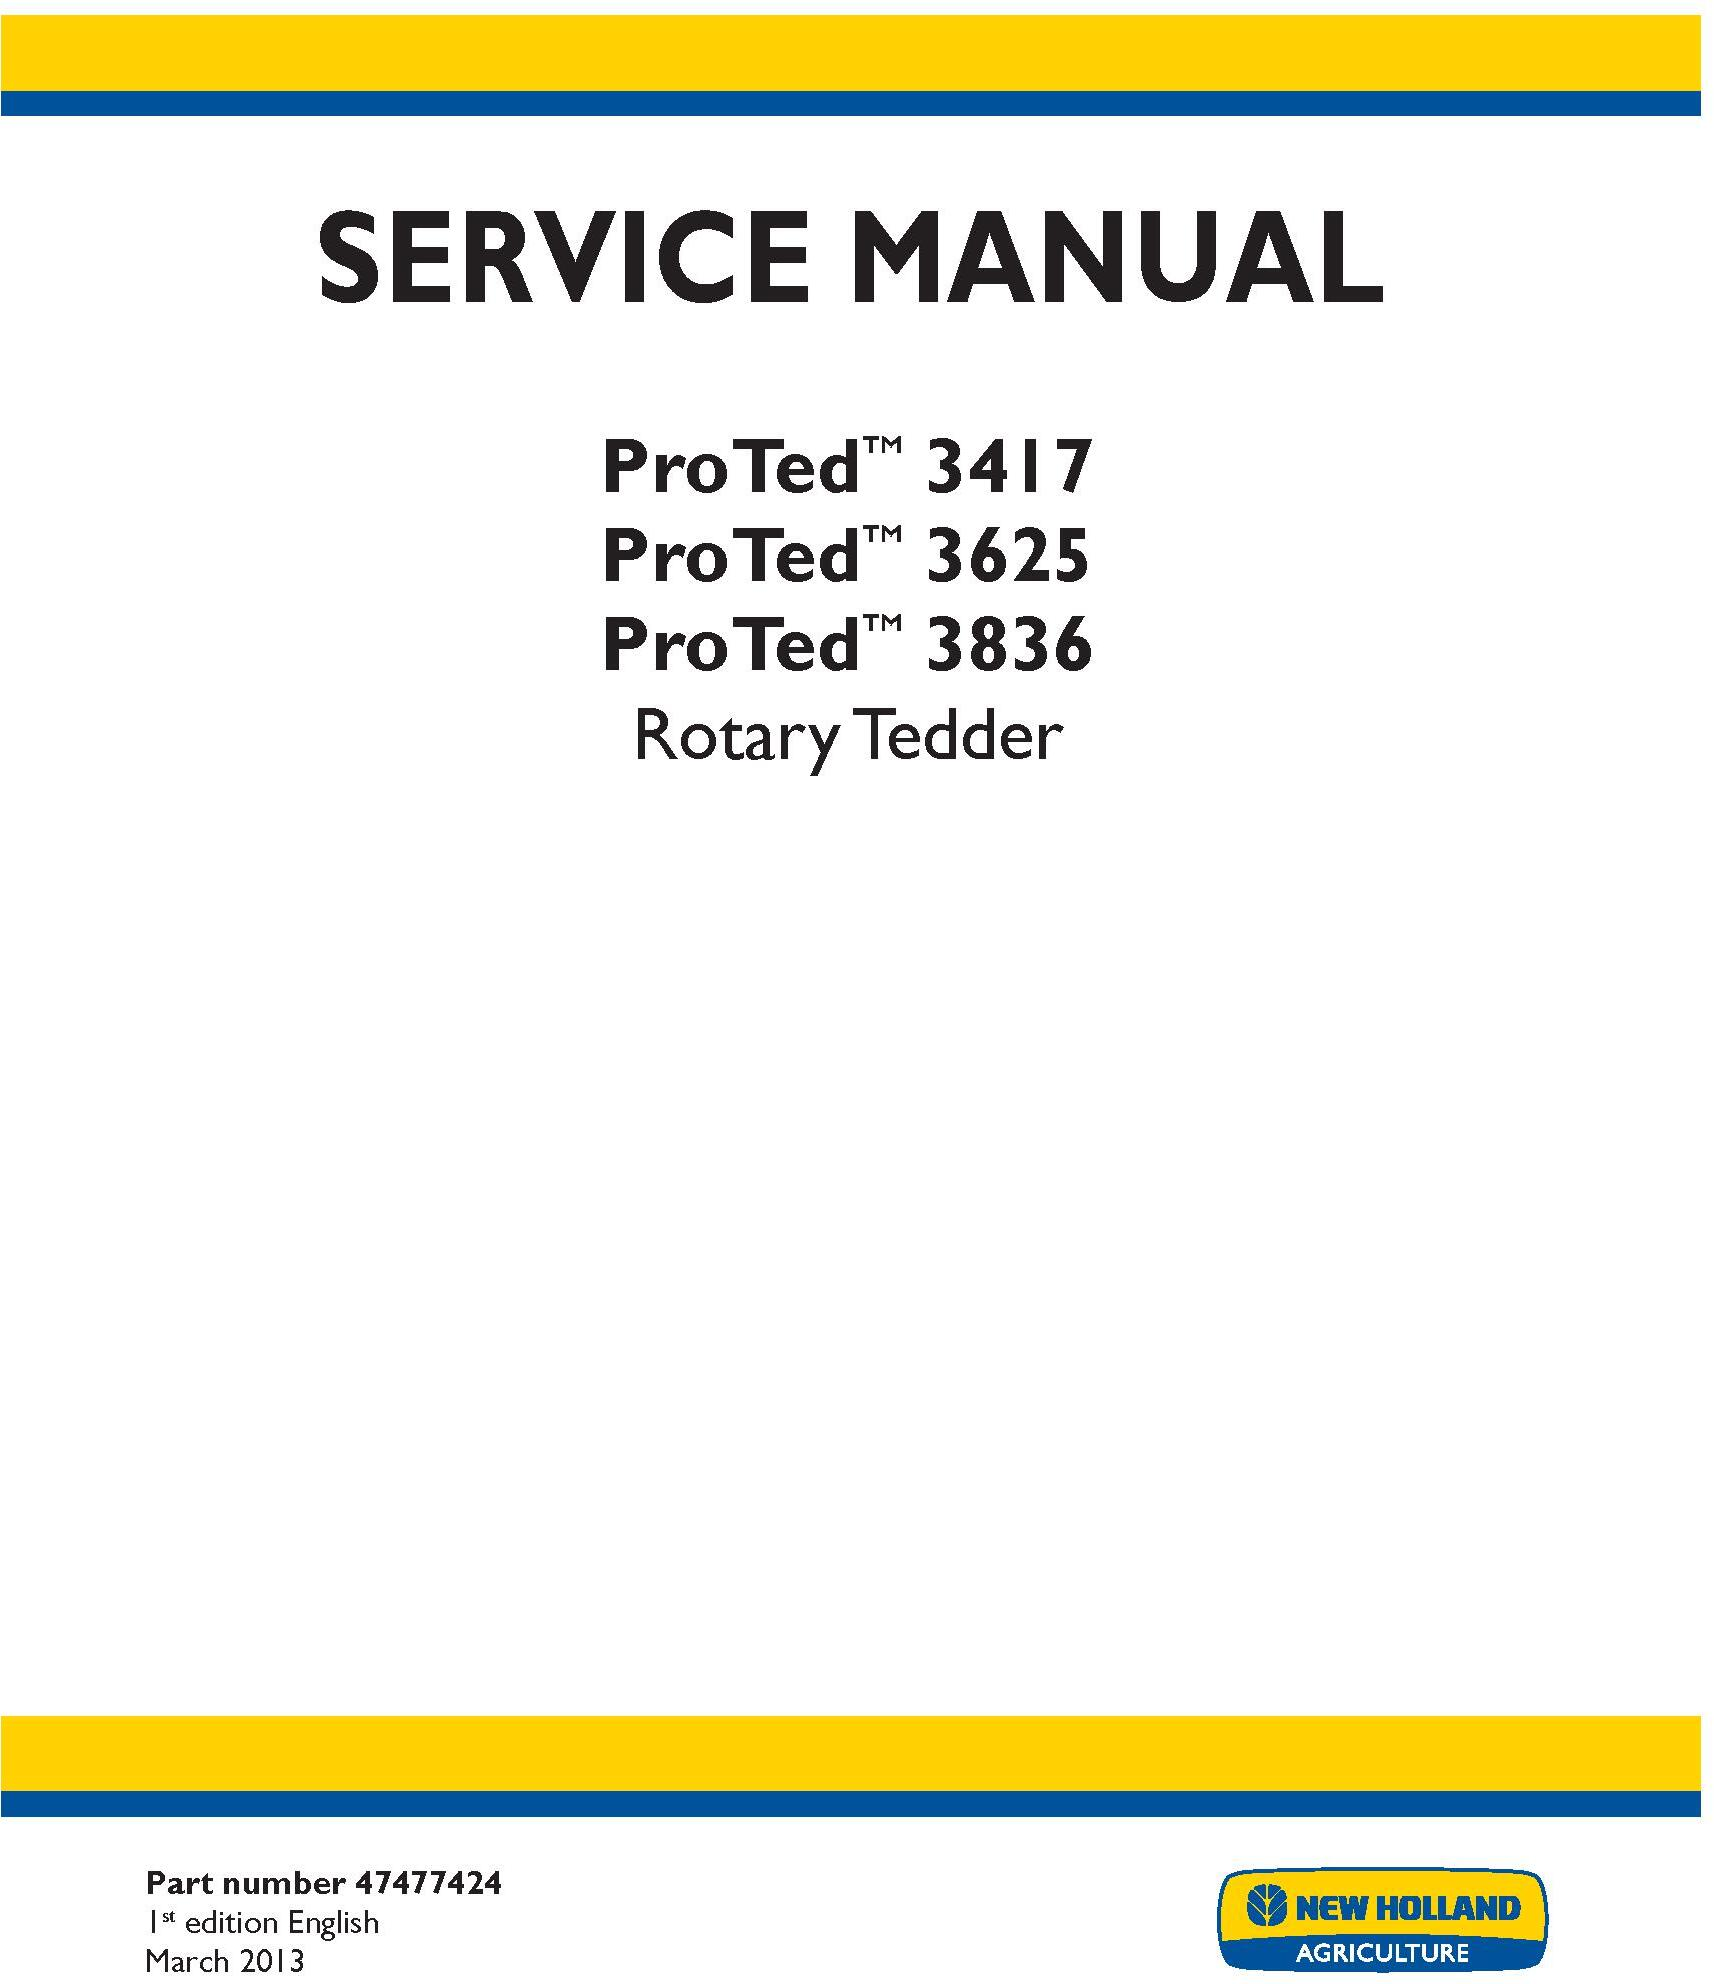 New Holland ProTed 3417, 3625, 3836 Rotary Tedder Service Manual - 20034